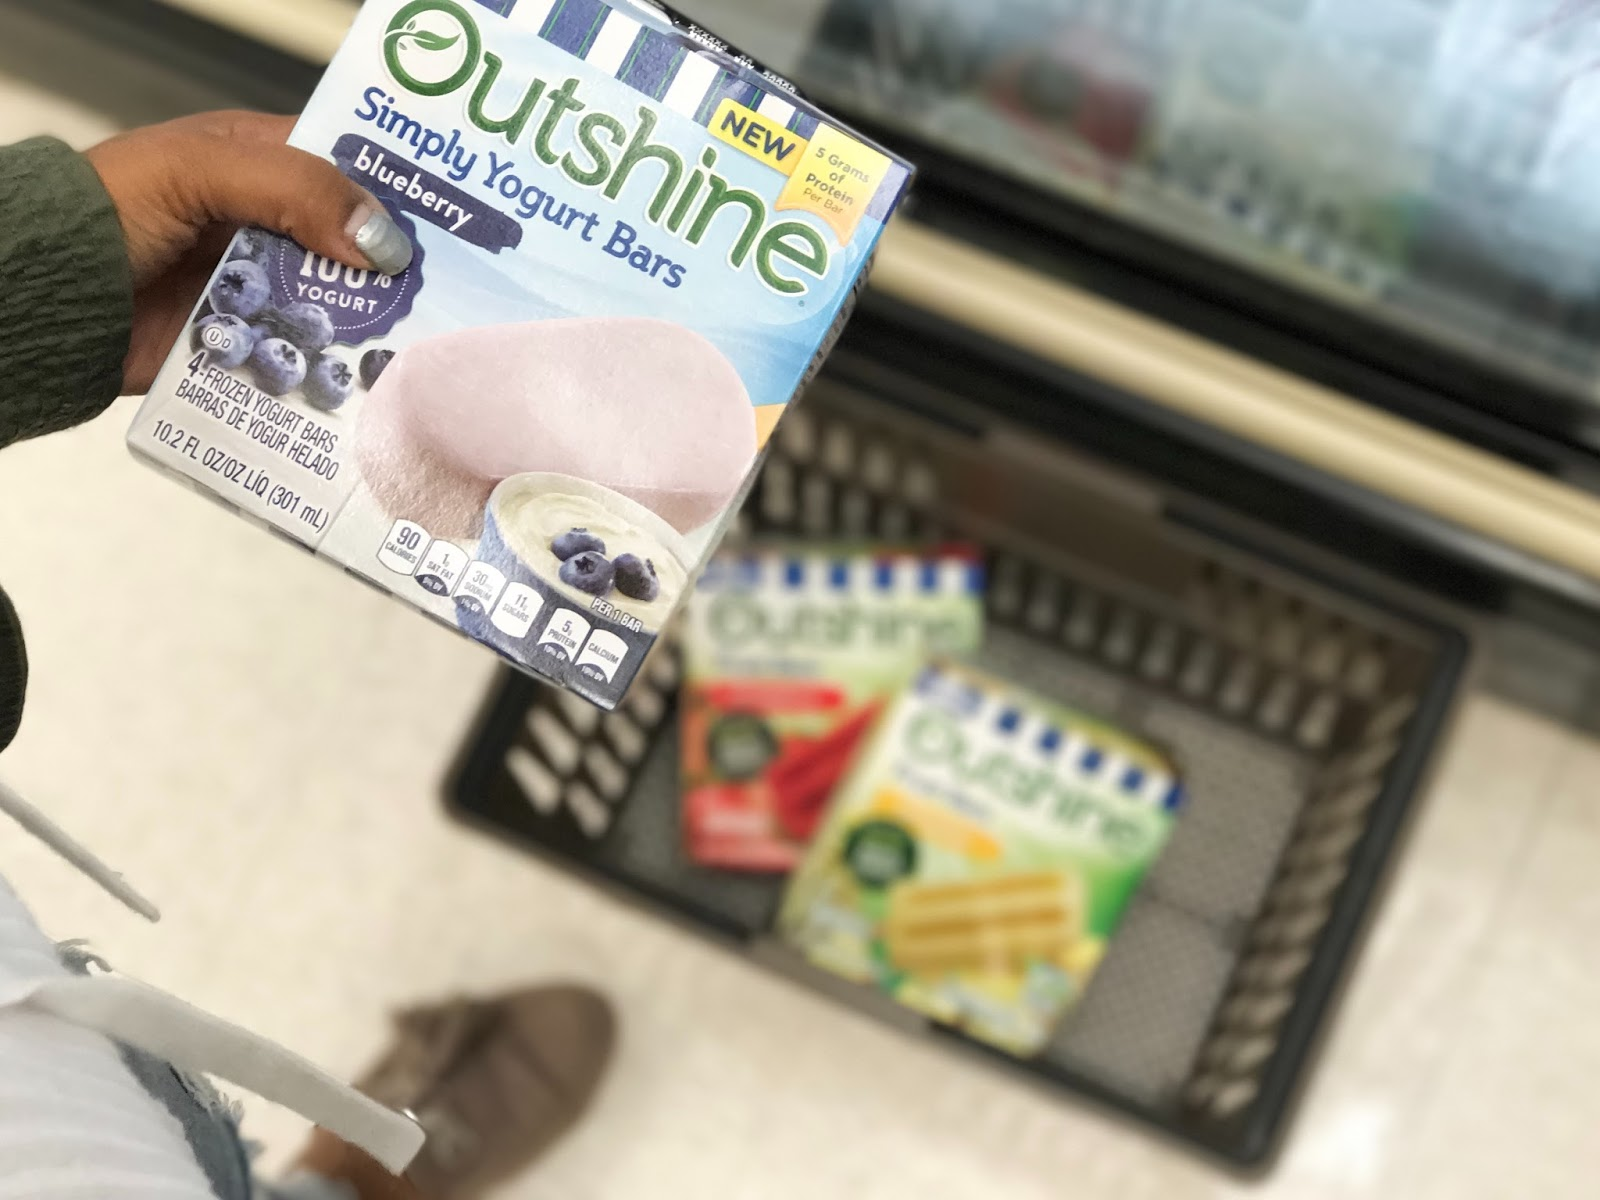 Outshine, snacks, ice cream yogurt, healthy snack ideas, healthy frozen snacks Outshine at Giant, blueberry